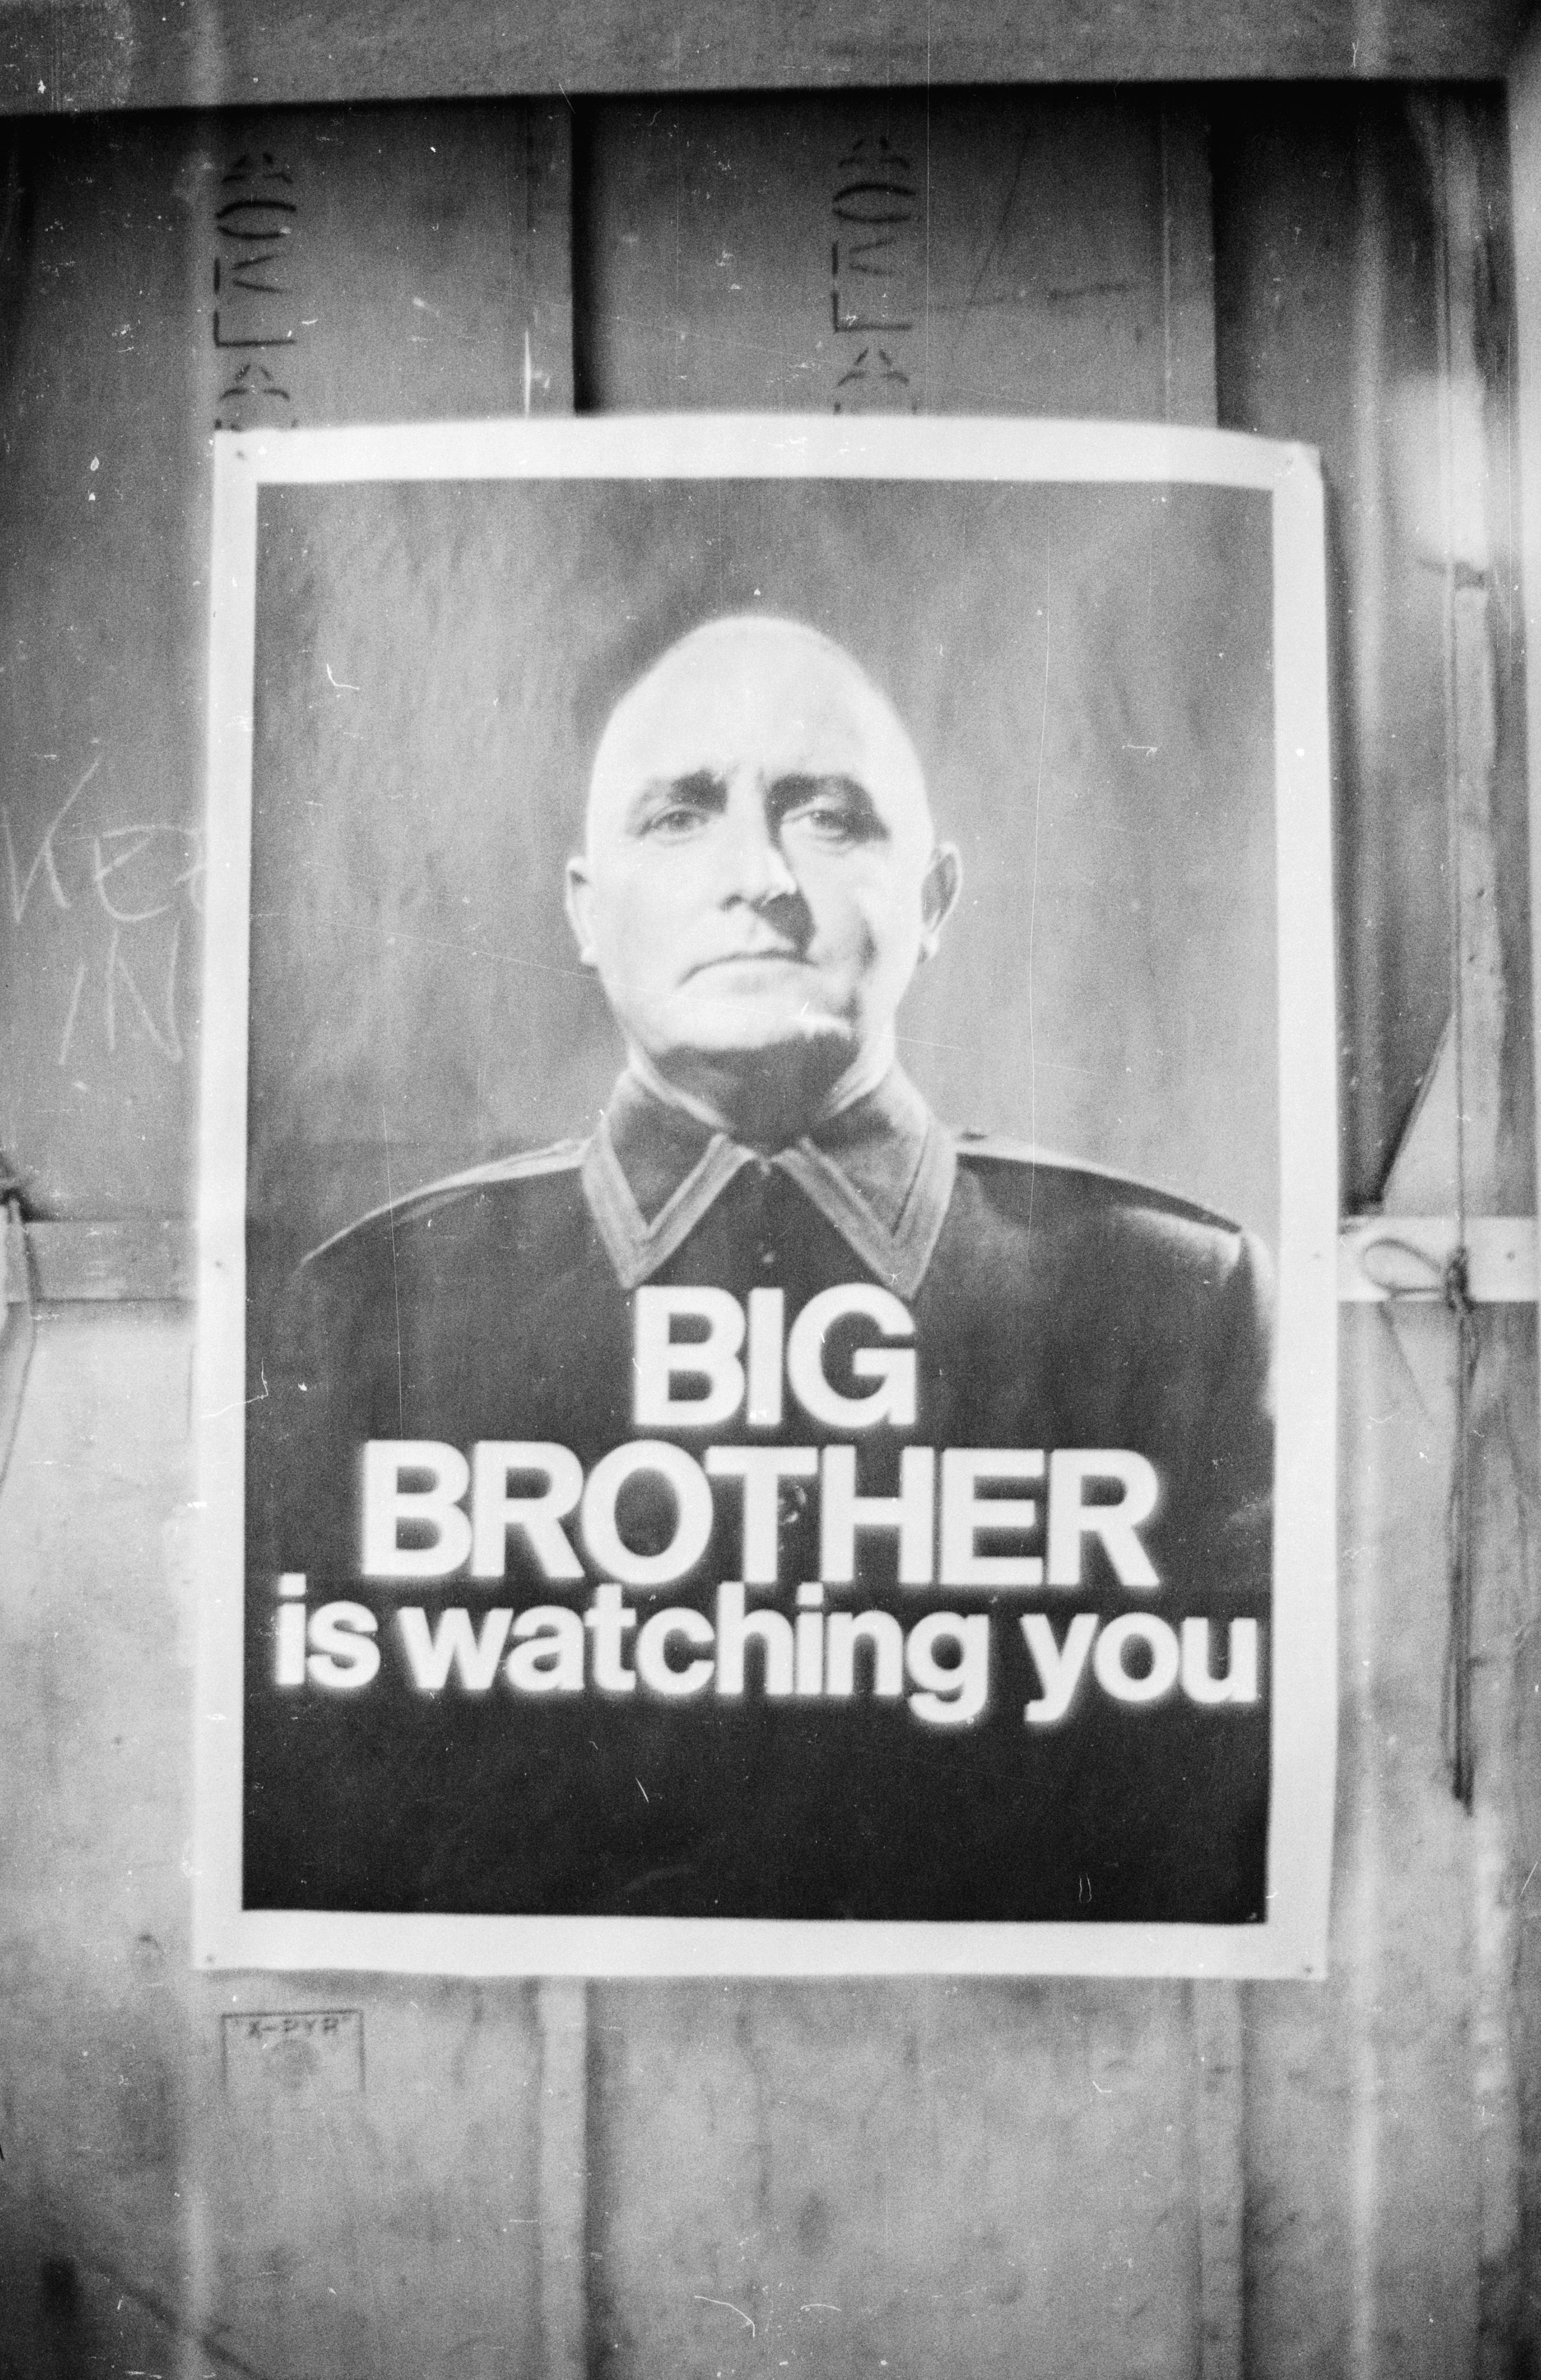 Book News: Sales Of Orwell's '1984' Spike After NSA Revelations